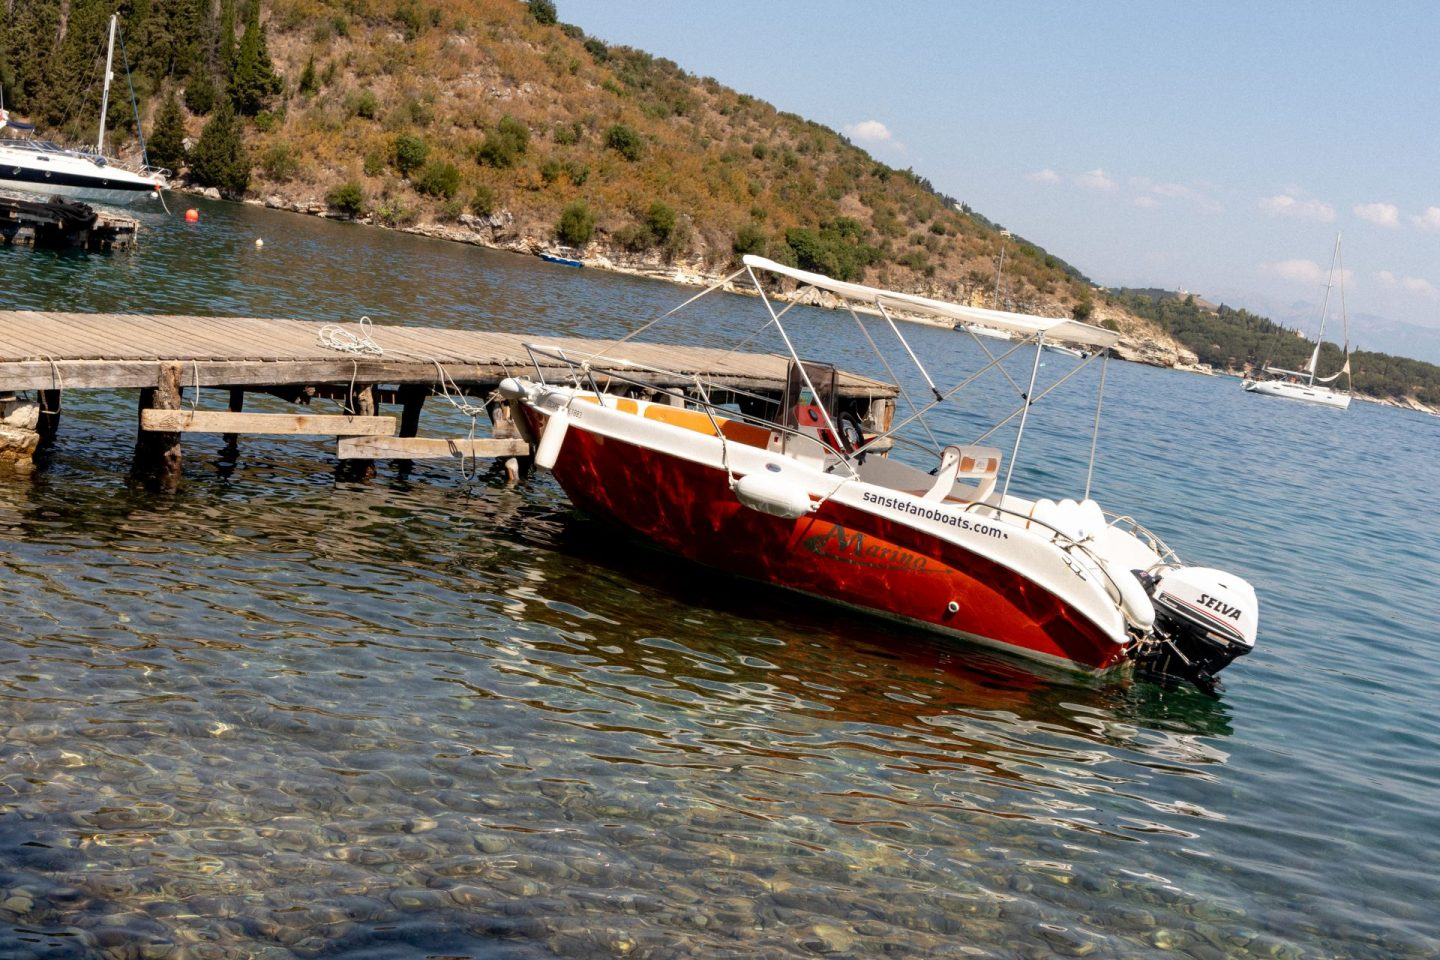 A boat in moored in Kouloura, Greece